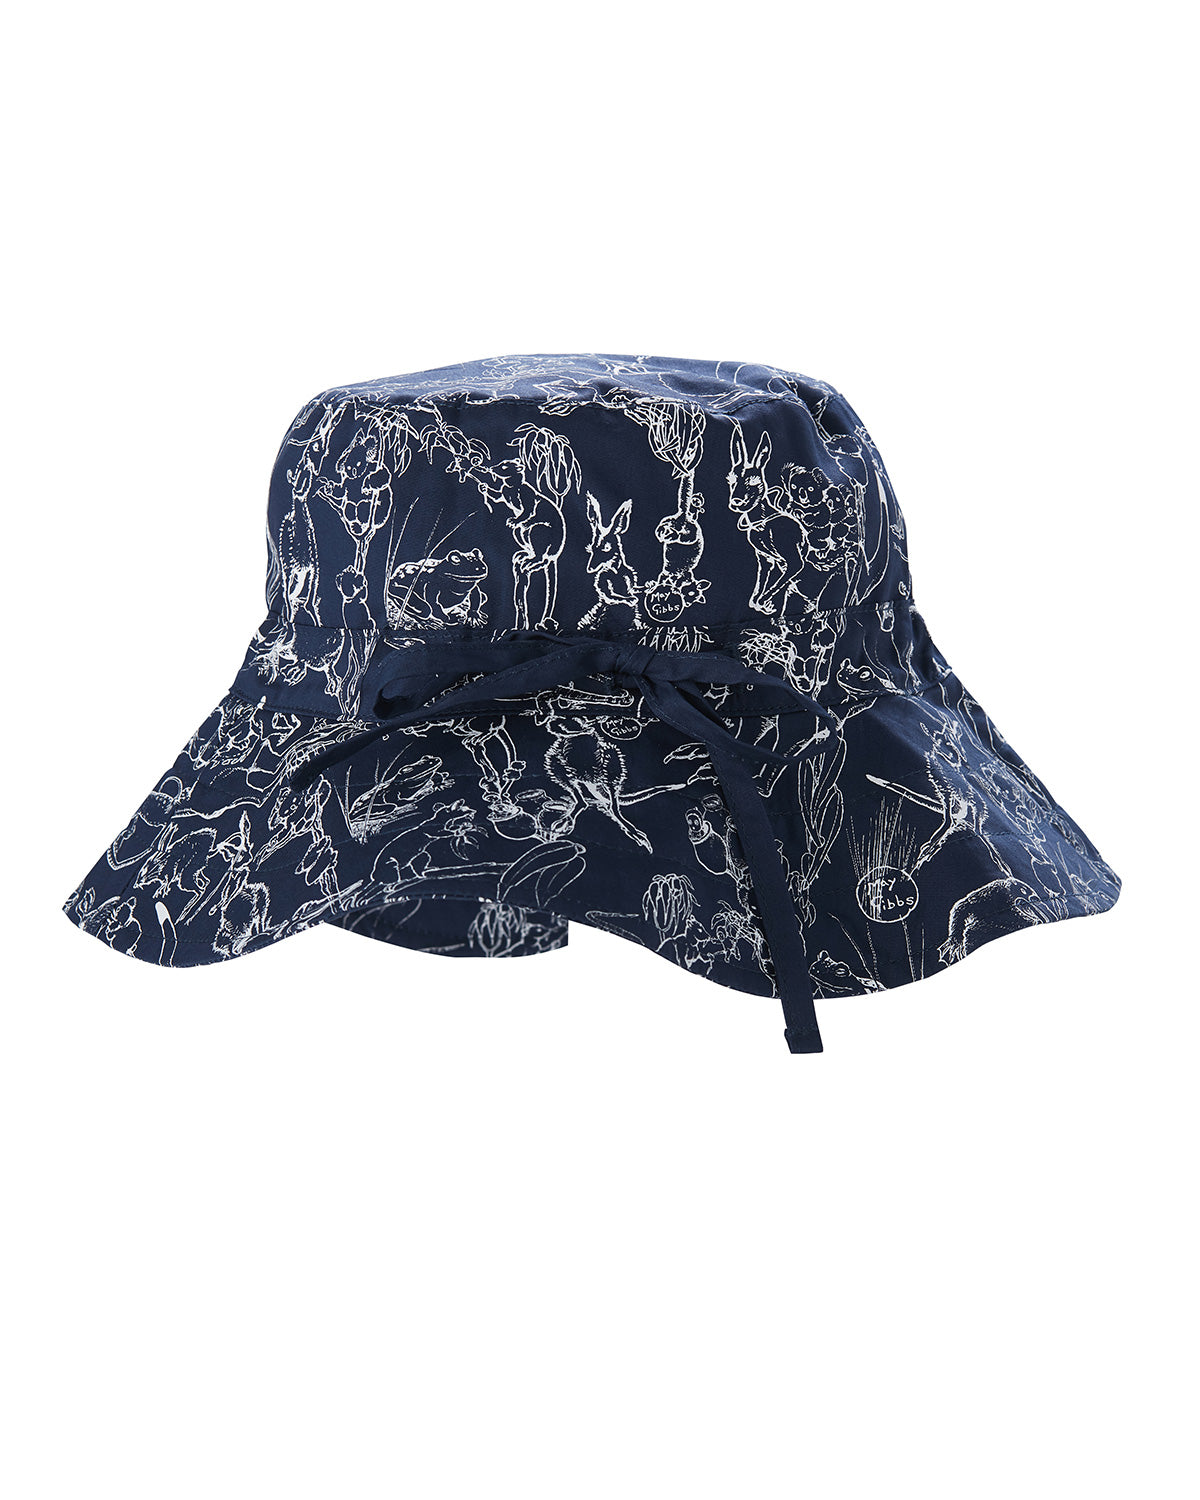 May Gibbs Sunny Sunhat - Bush Dance Navy